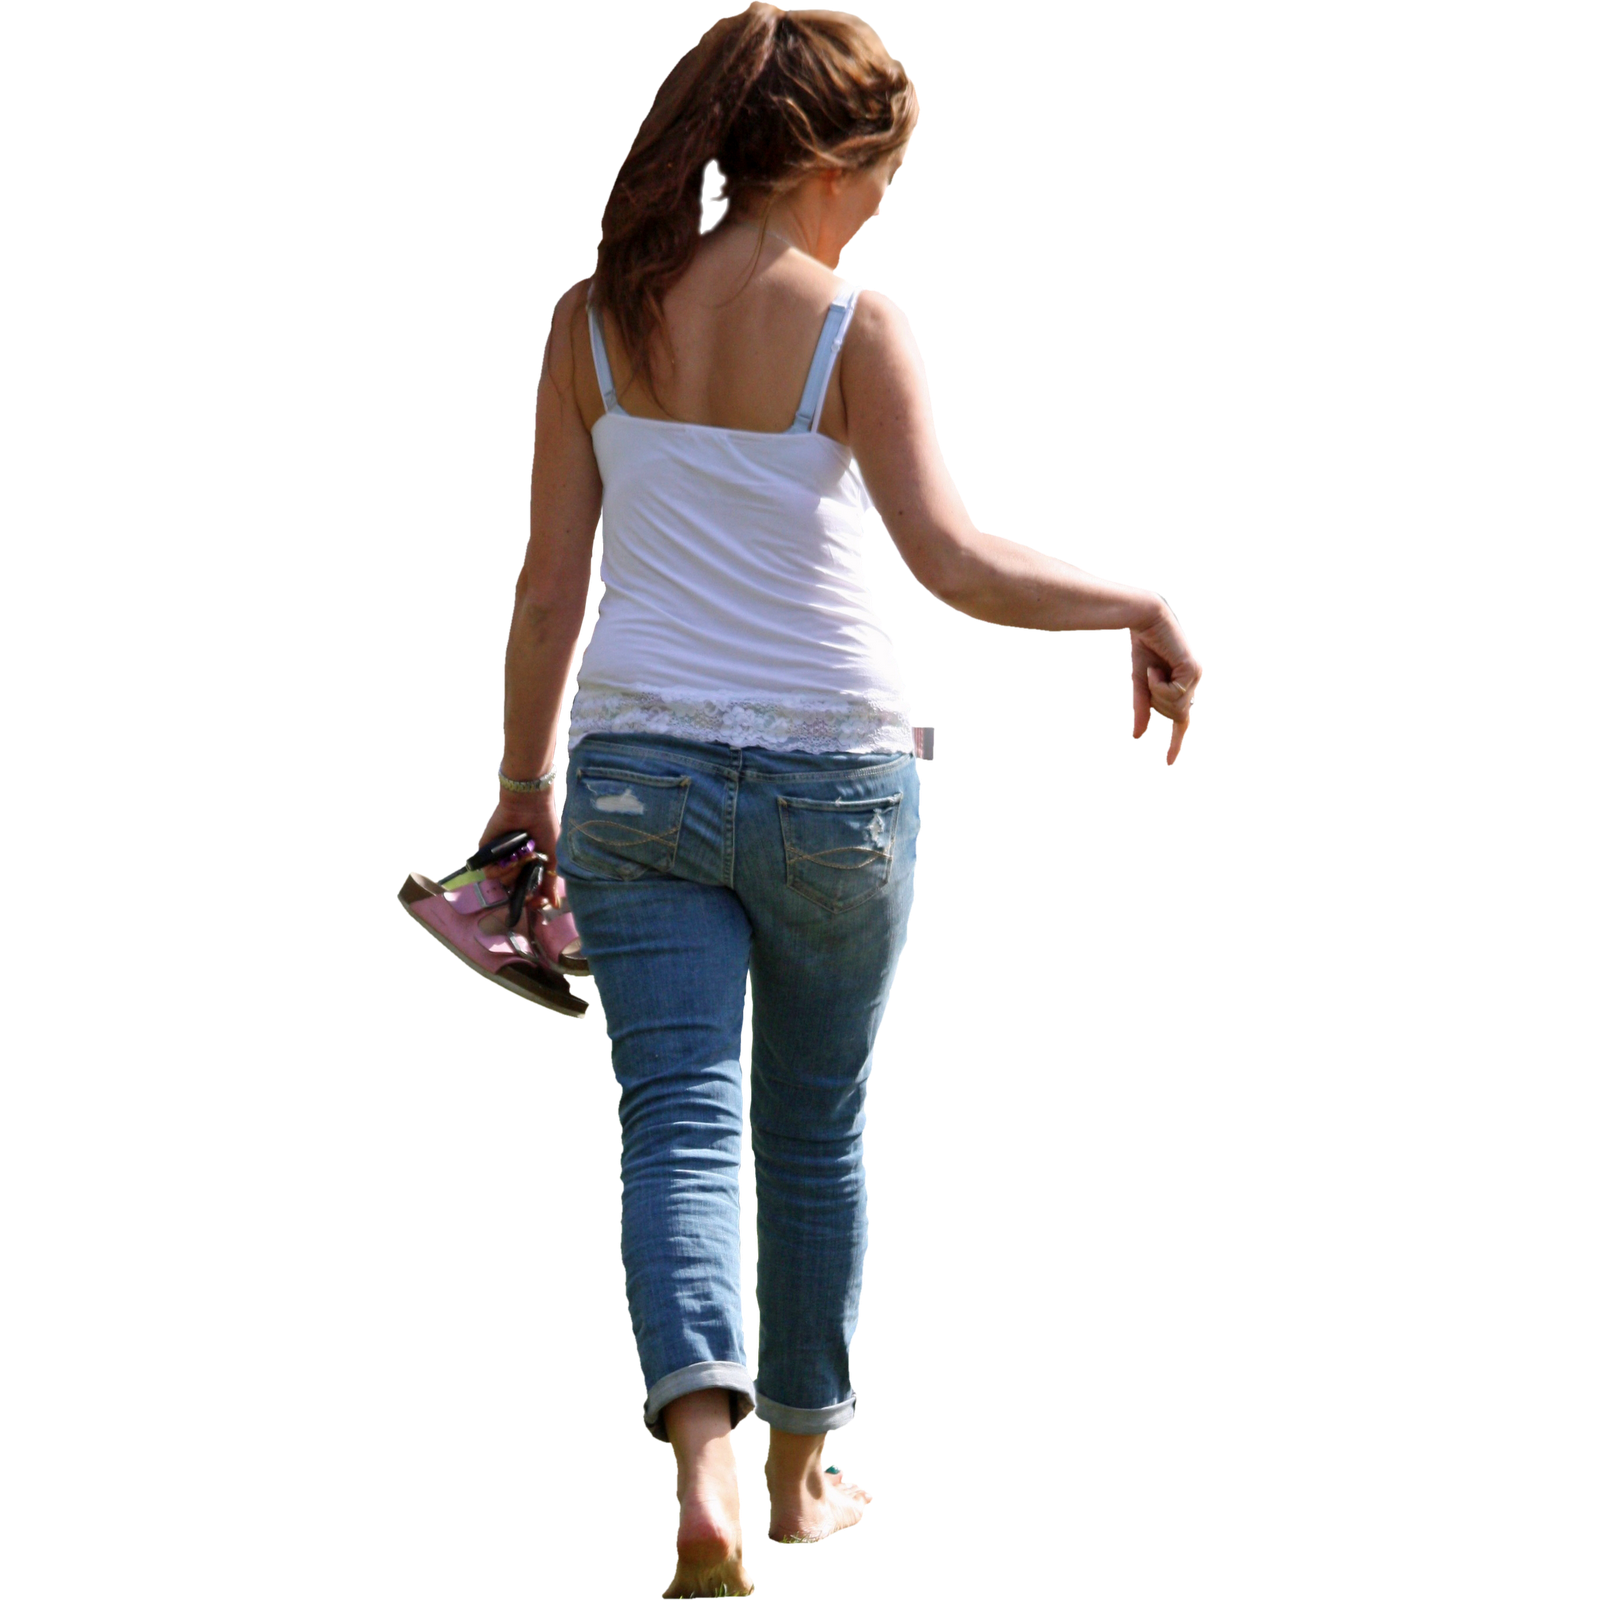 Girl backgrounds png. Girls transparent images pluspng